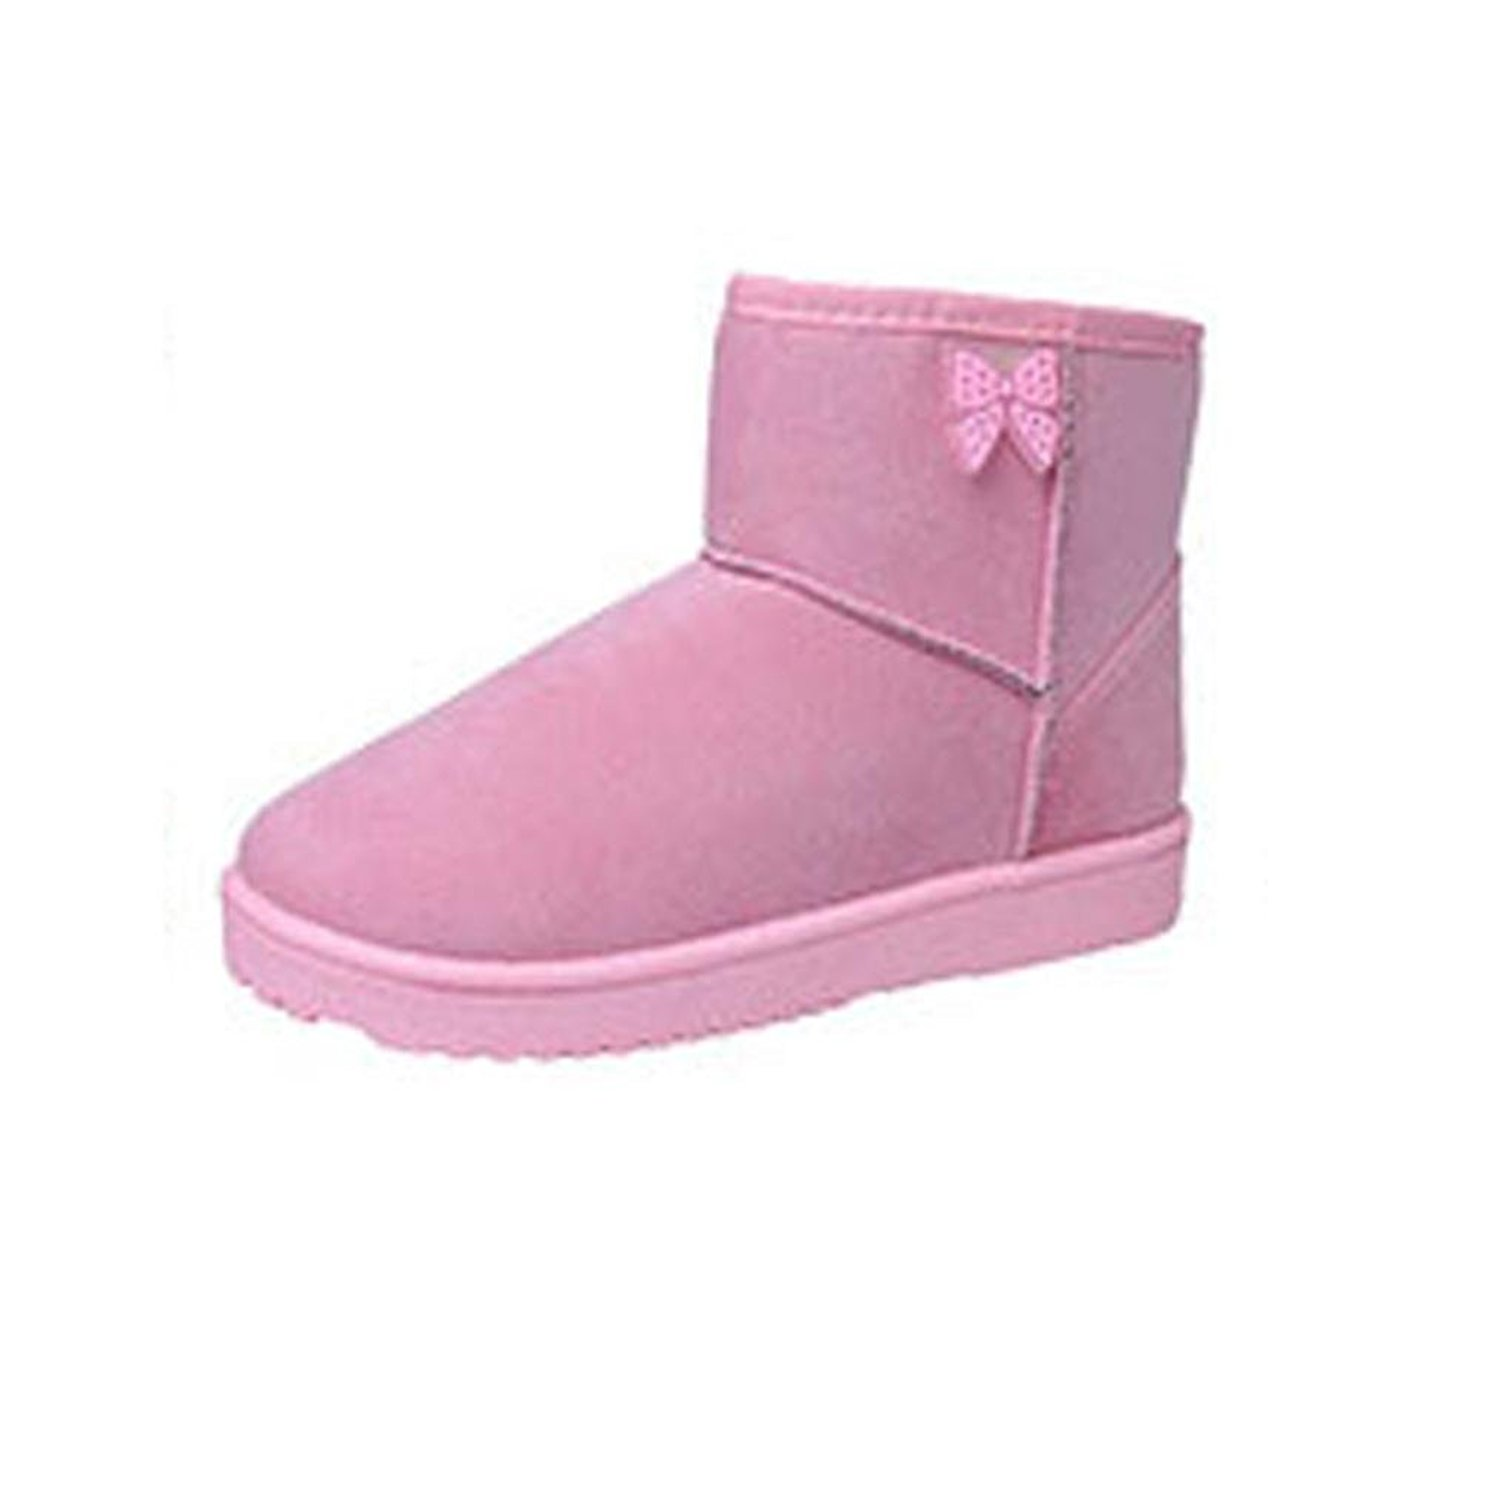 DEESEE(TM) Women Ankle Boots Fur Lined Winter Autumn Warm Snow Boots Shoes (US 7, Pink)